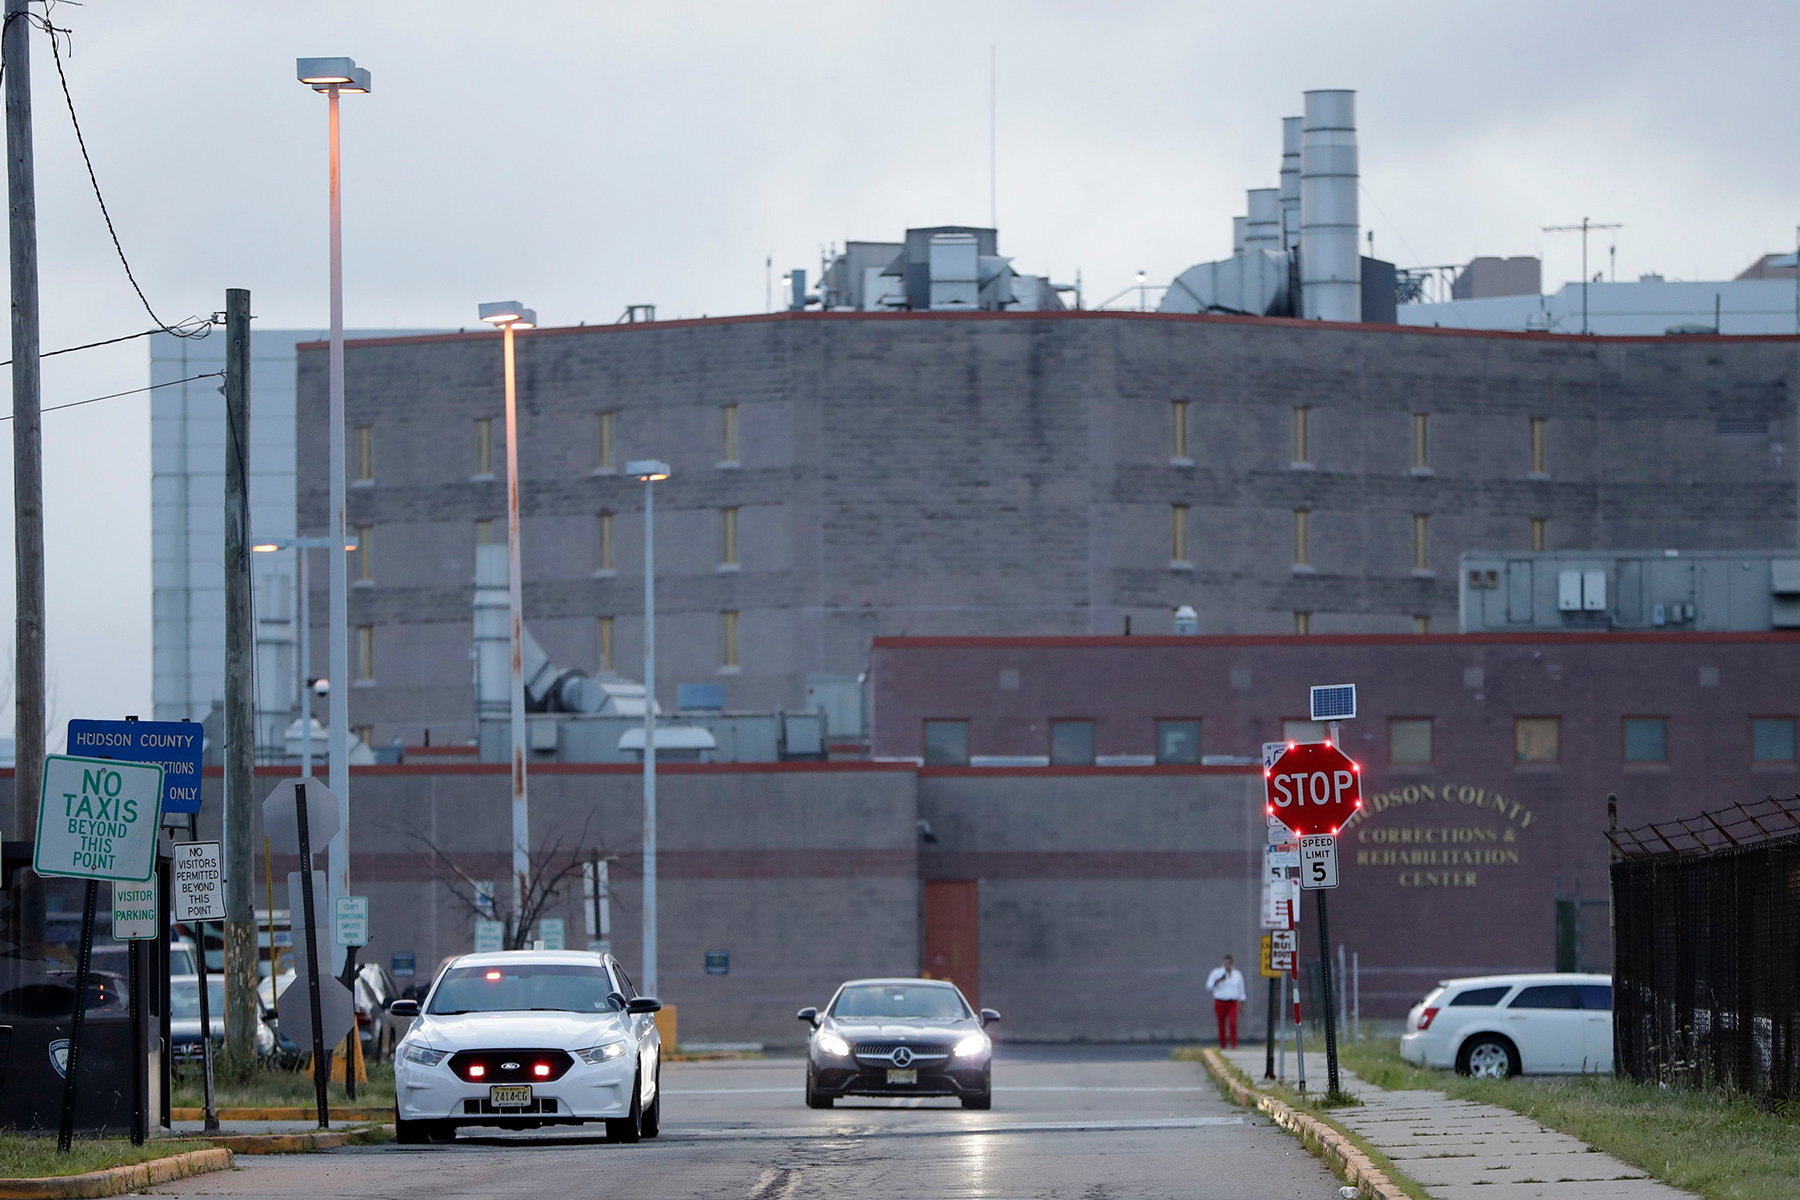 An official's vehicle, left, is parked near the exit to the Hudson County Correctional Facility, in Kearny, N.J. A judge on Tuesday ordered the immediate release of Pablo Villavicencio, an Ecuadorean immigrant who is being held at the facility for deportation after he delivered pizza to a Brooklyn Army installation. U.S. District Judge Paul Crotty said Villavicencio can remain in the United States while he exhausts his right to try to gain legal status. Villavicencio applied to stay in the U.S. after he married a U.S. citizen, with whom he has two young girlsImmigration Pizza Delivery, Kearny, USA - 24 Jul 2018